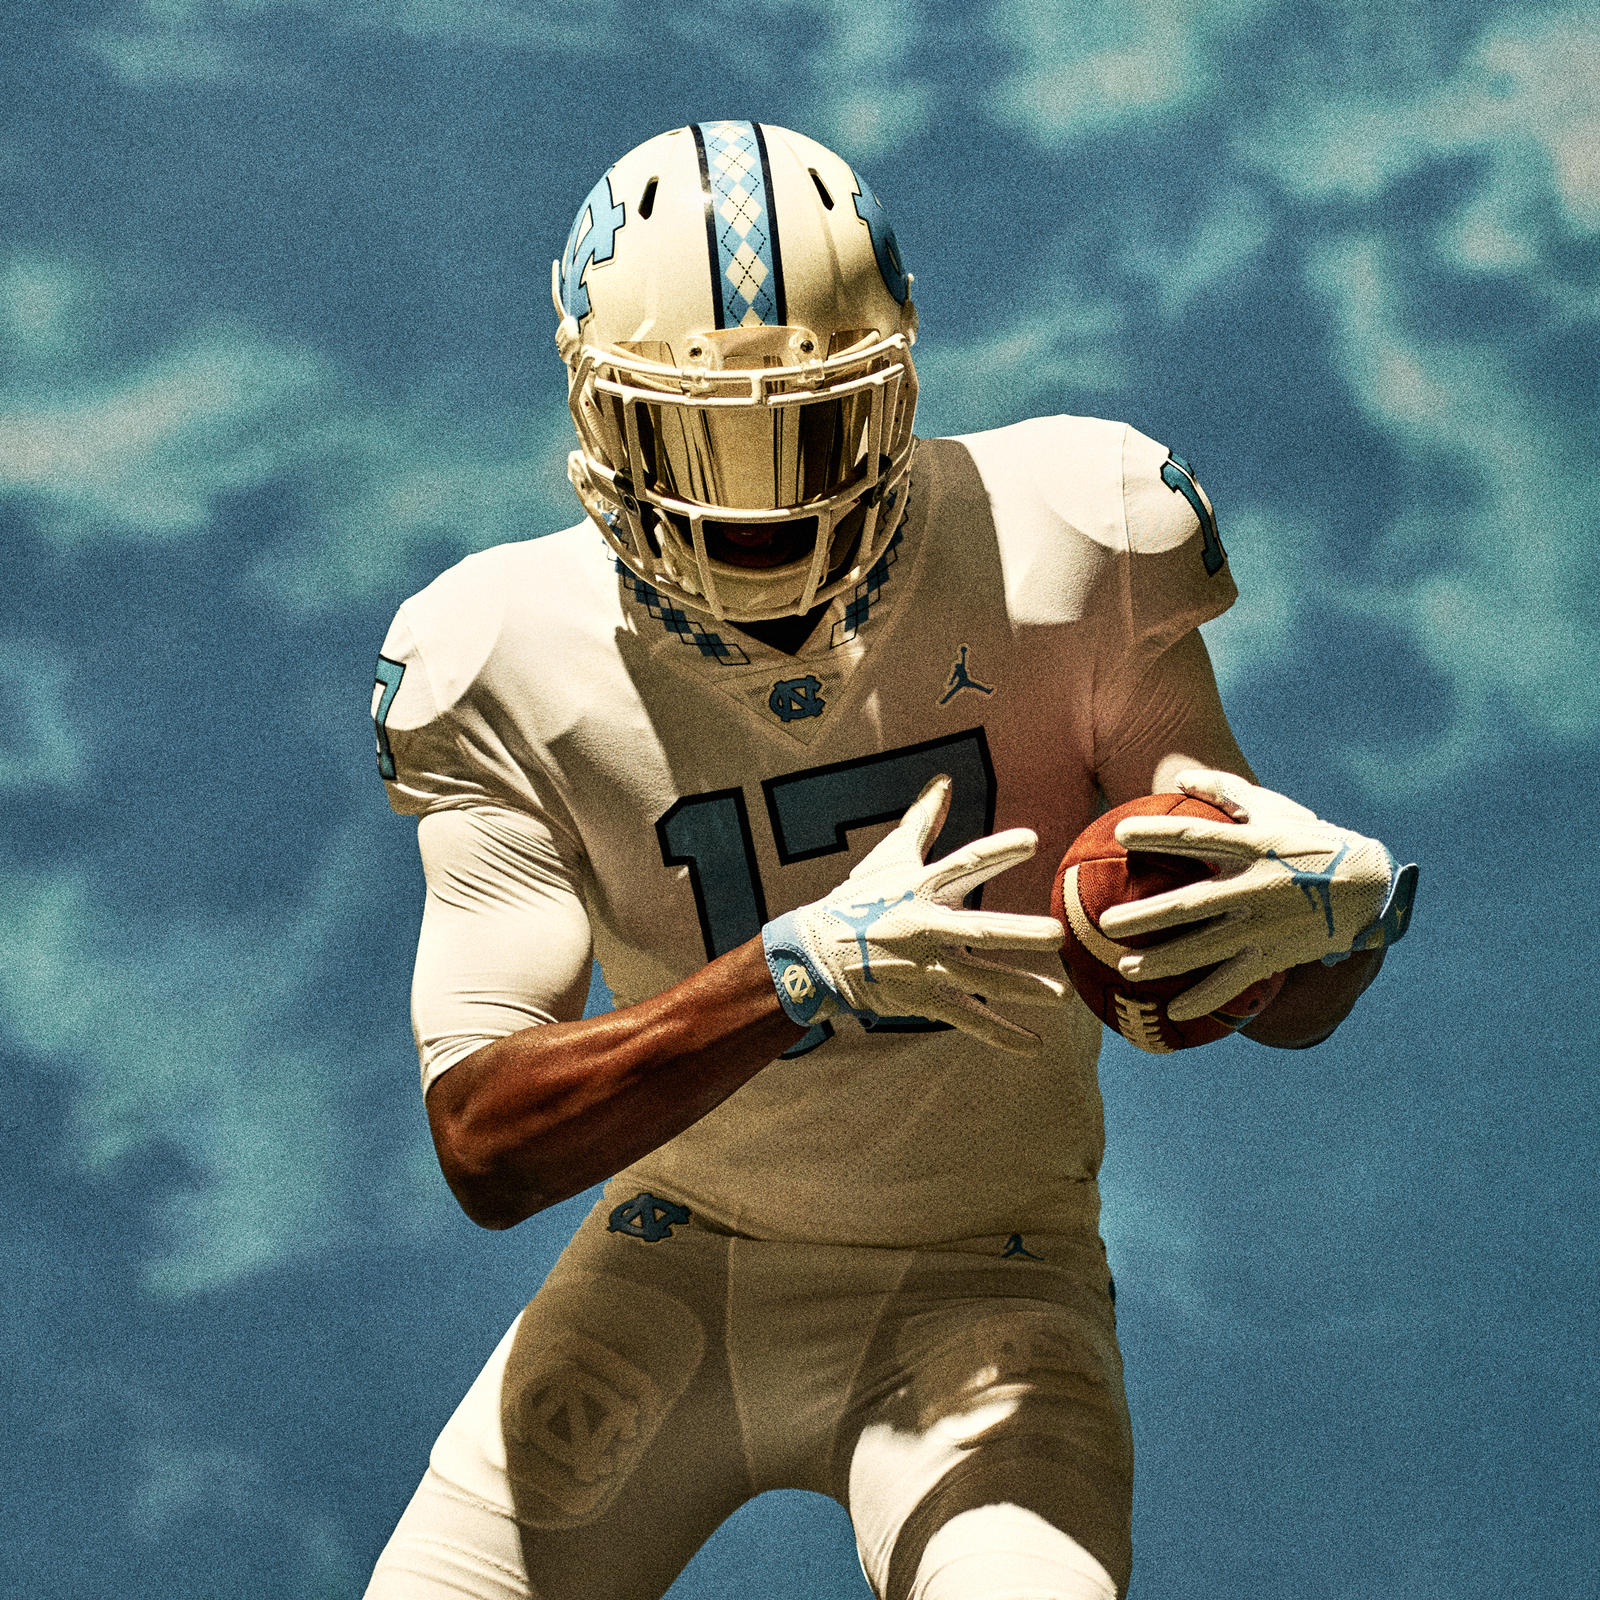 Jordan Brand Reveals the University of North Carolina Football Uniforms  1